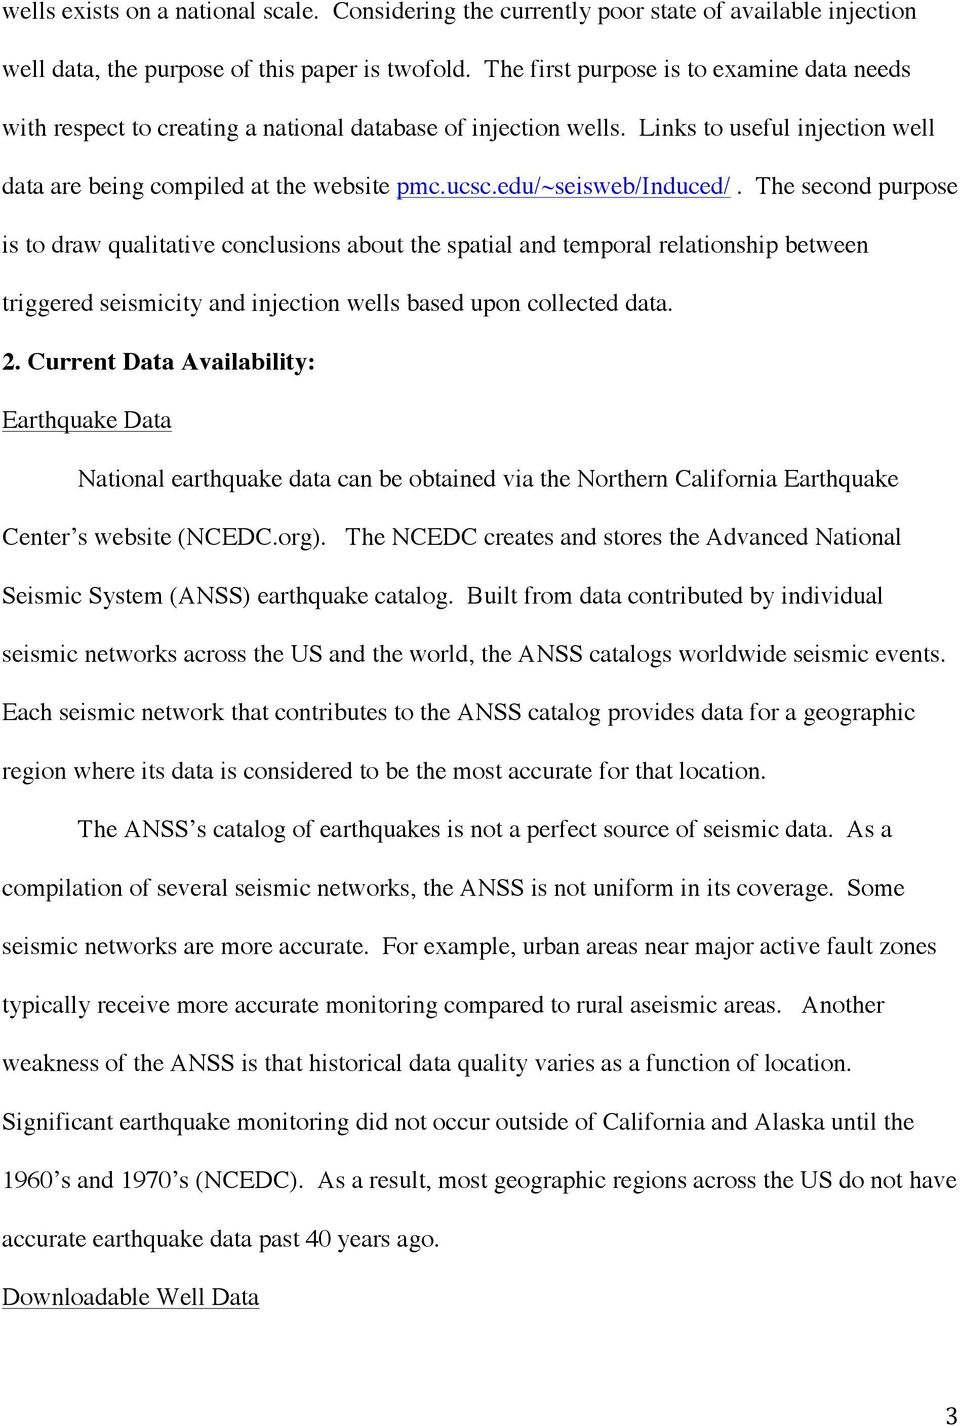 edu/~seisweb/induced/. The second purpose is to draw qualitative conclusions about the spatial and temporal relationship between triggered seismicity and injection wells based upon collected data. 2.